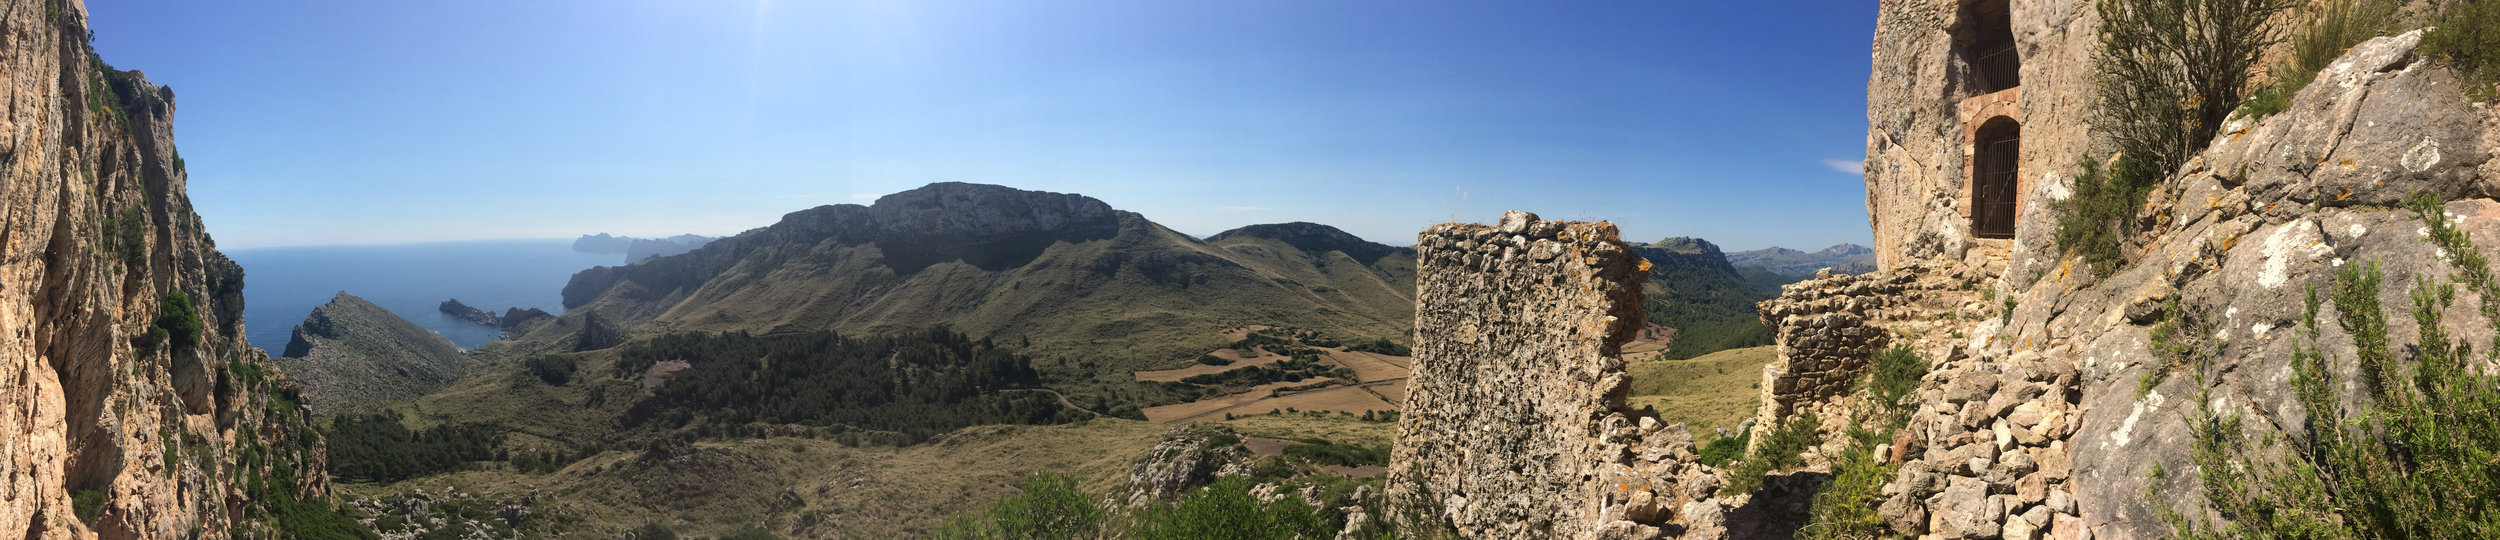 At the foot of the fortress, there were stunning panoramas of the valley we hiked. To the left the peninsula of the private beach can be seen.